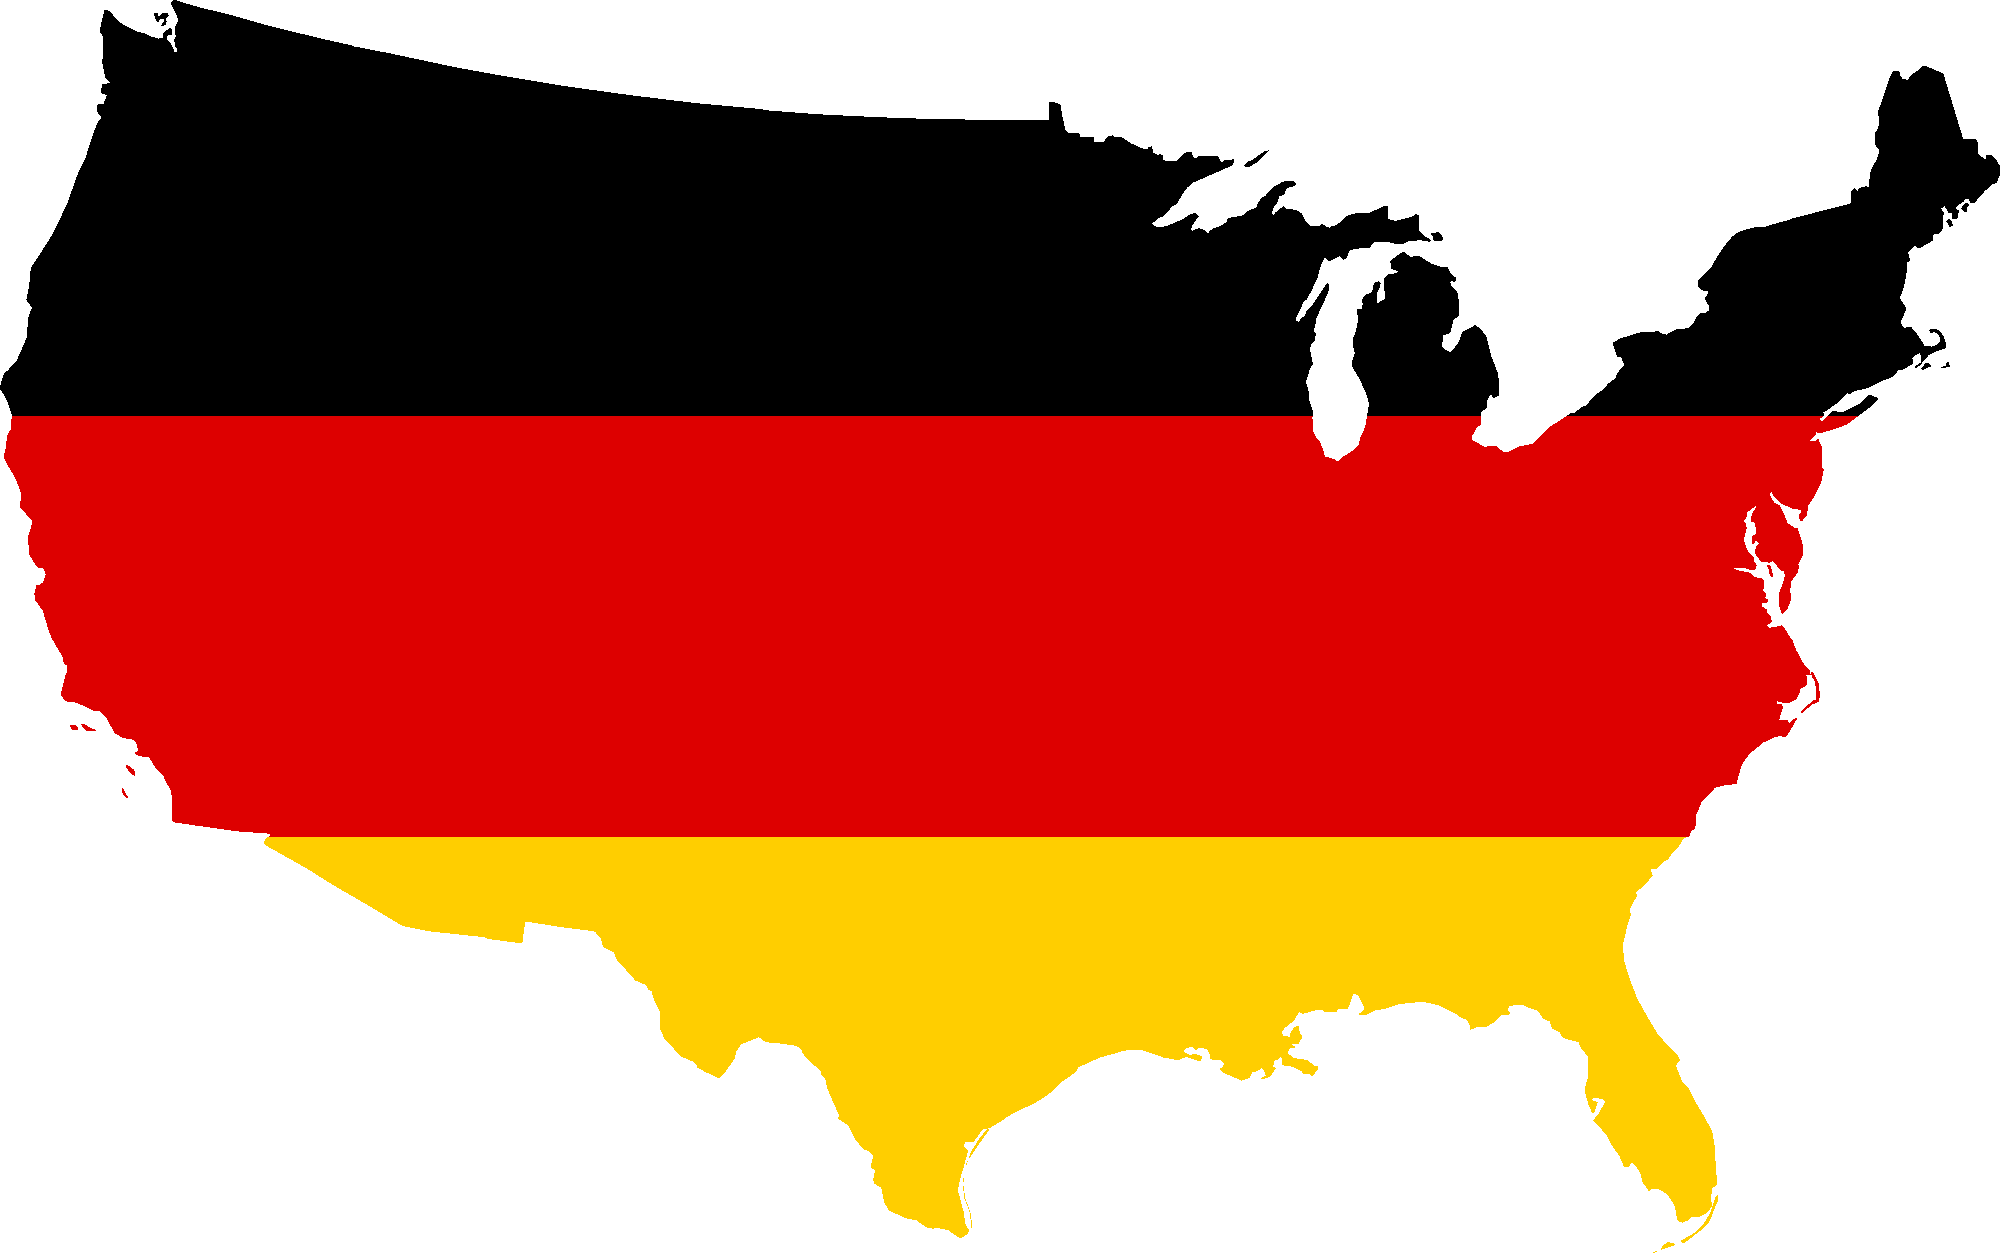 Germany and its Flag on a Map of USA 367.41 Kb